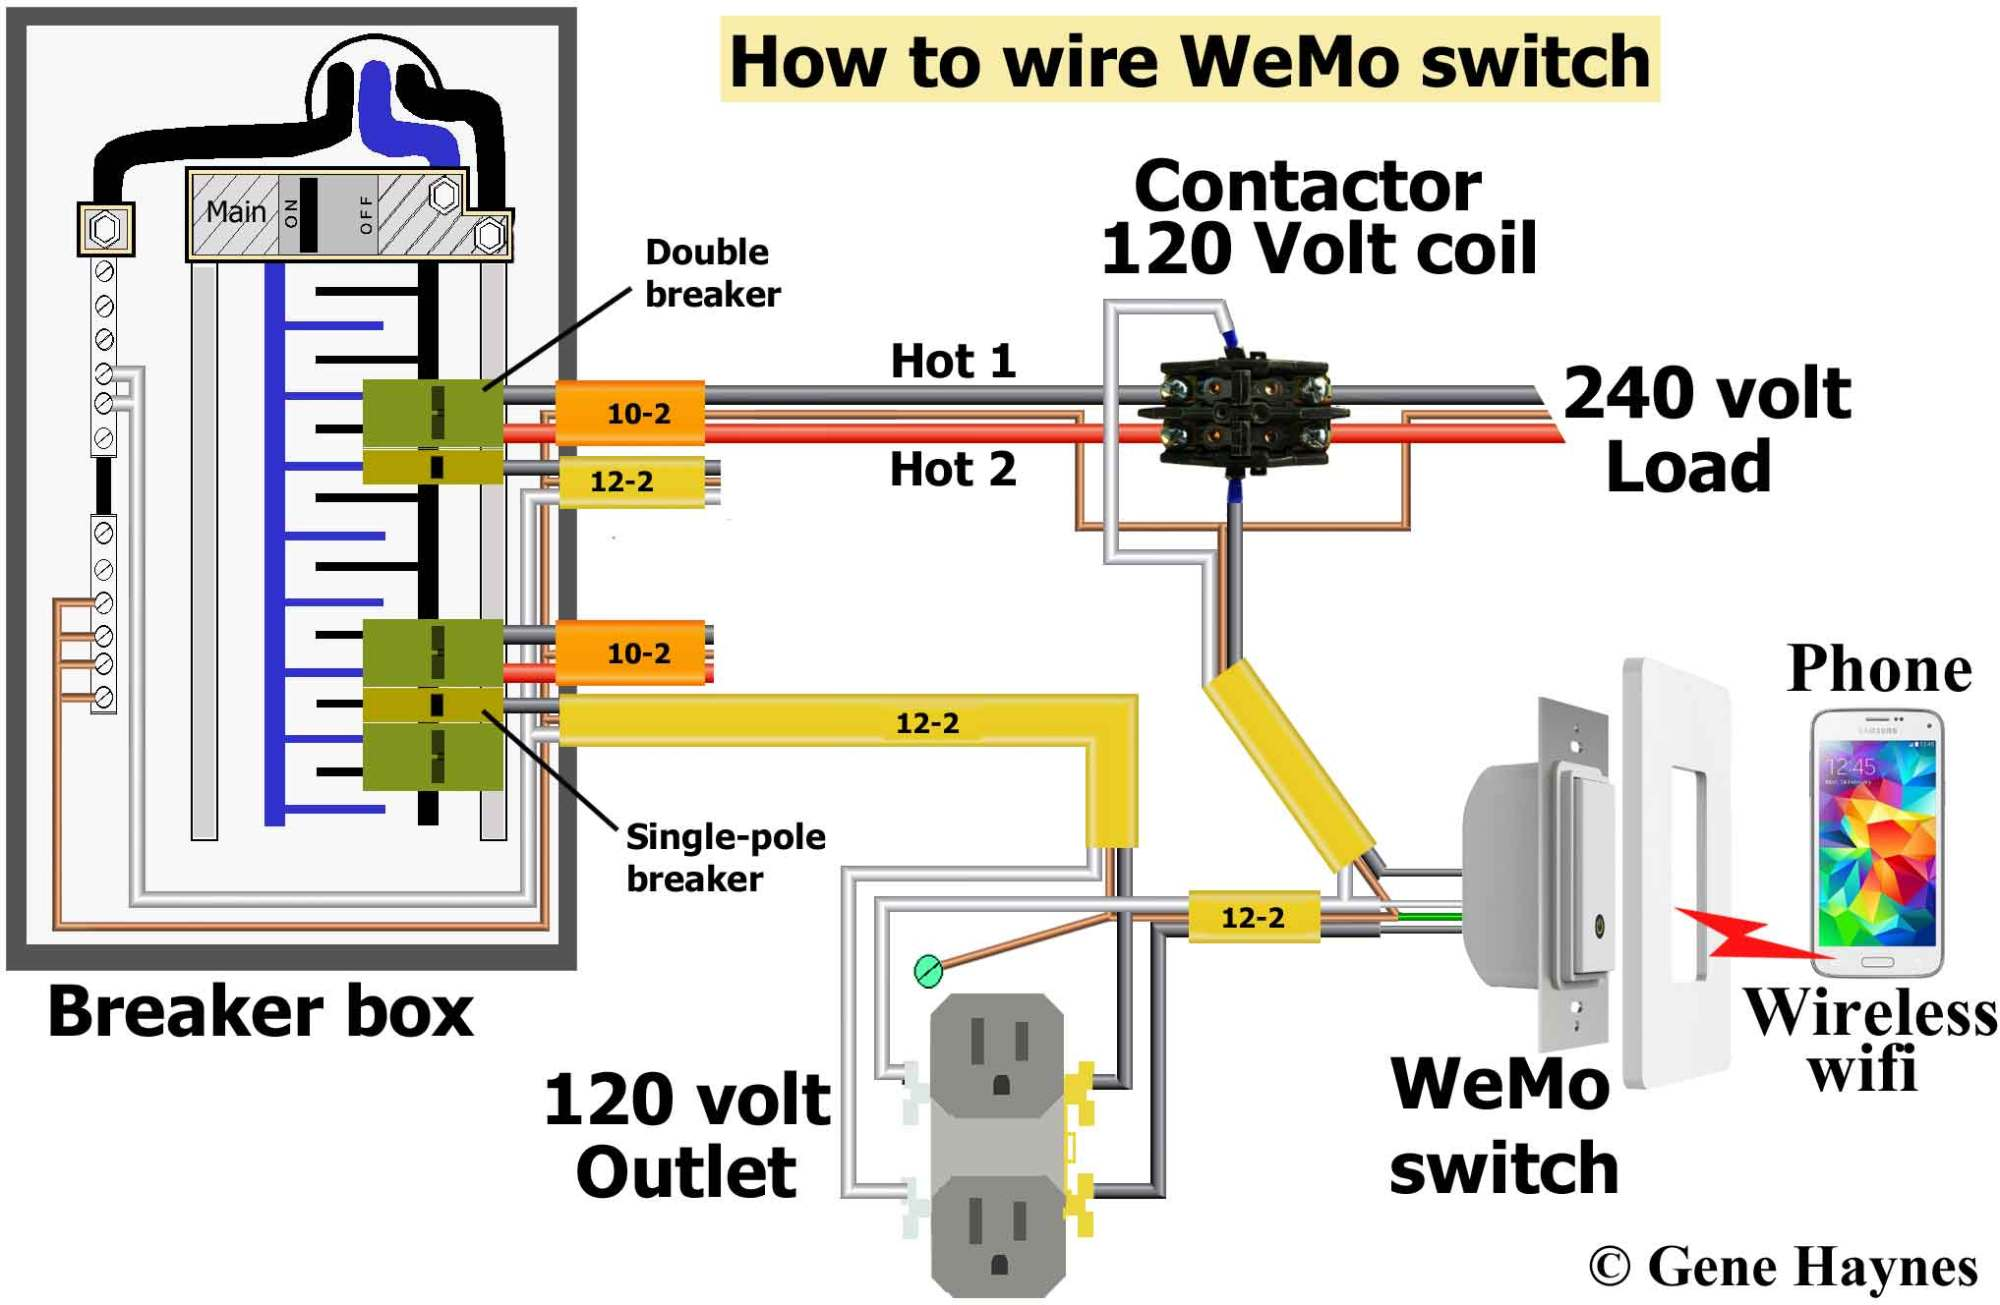 hight resolution of larger image how to wire wemo switch hardwire do not use stranded wire under screw plates buy wemo switch contactor with 120 volt coil